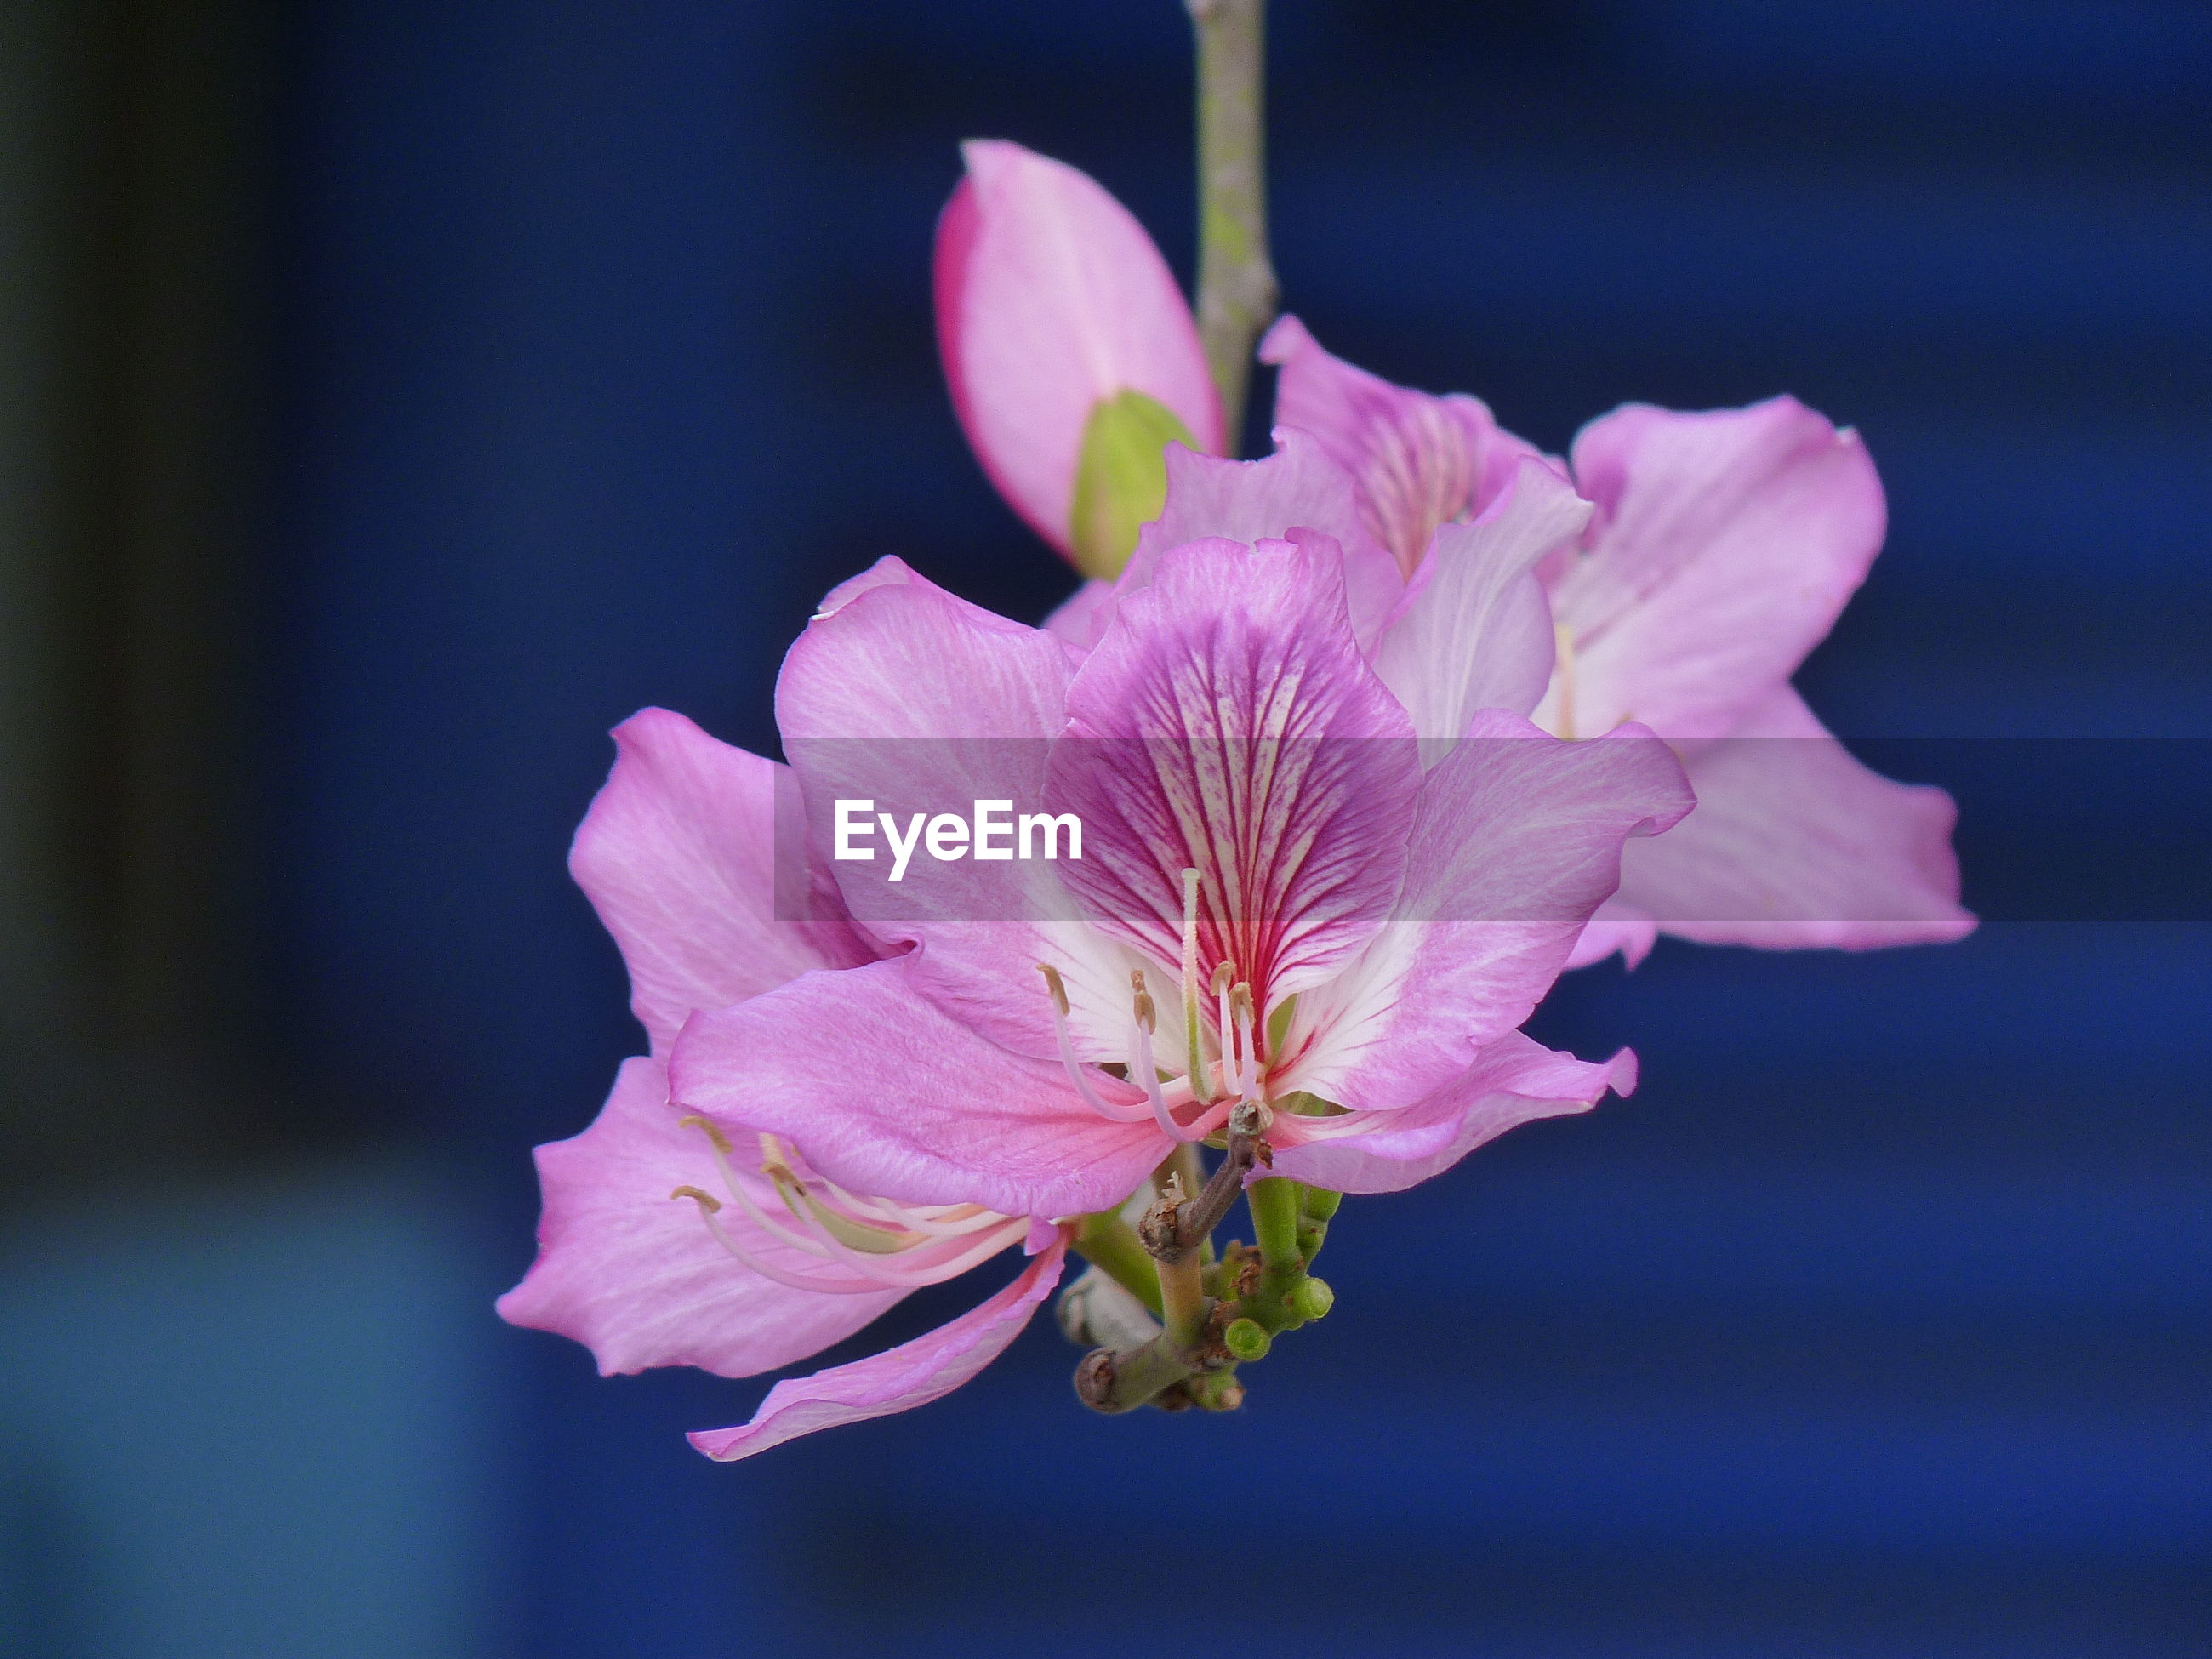 CLOSE-UP OF PINK FLOWERS AGAINST BLURRED BACKGROUND